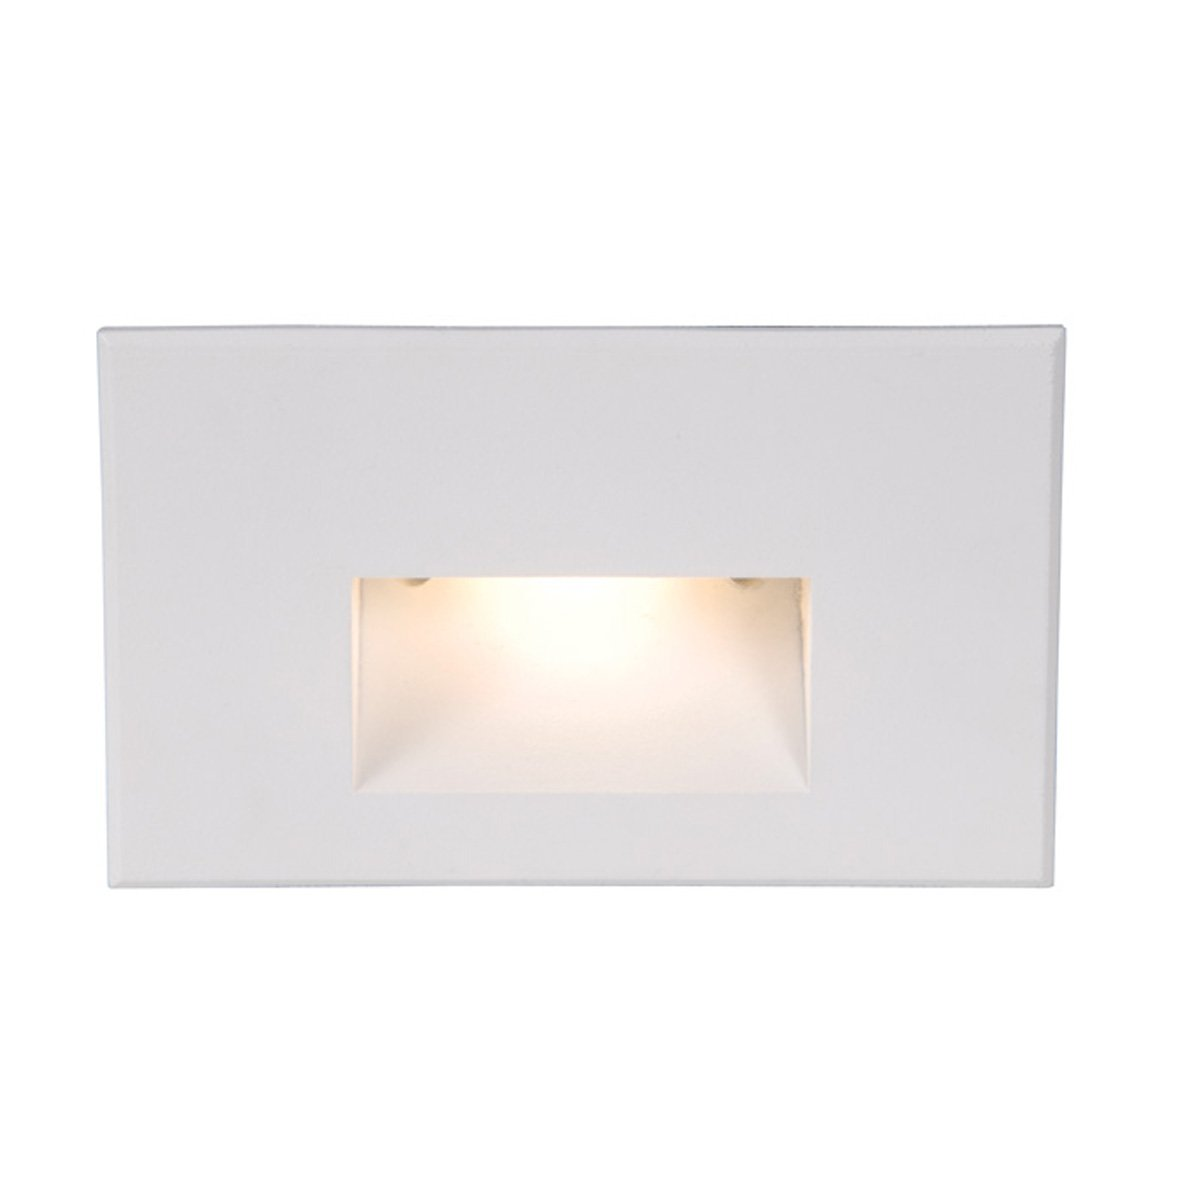 wac lighting wl led c wt rectangular scoop w v led step wac lighting wl led100 c wt rectangular scoop 4w 120v led step light cool white lens and white finish indoor step lights com